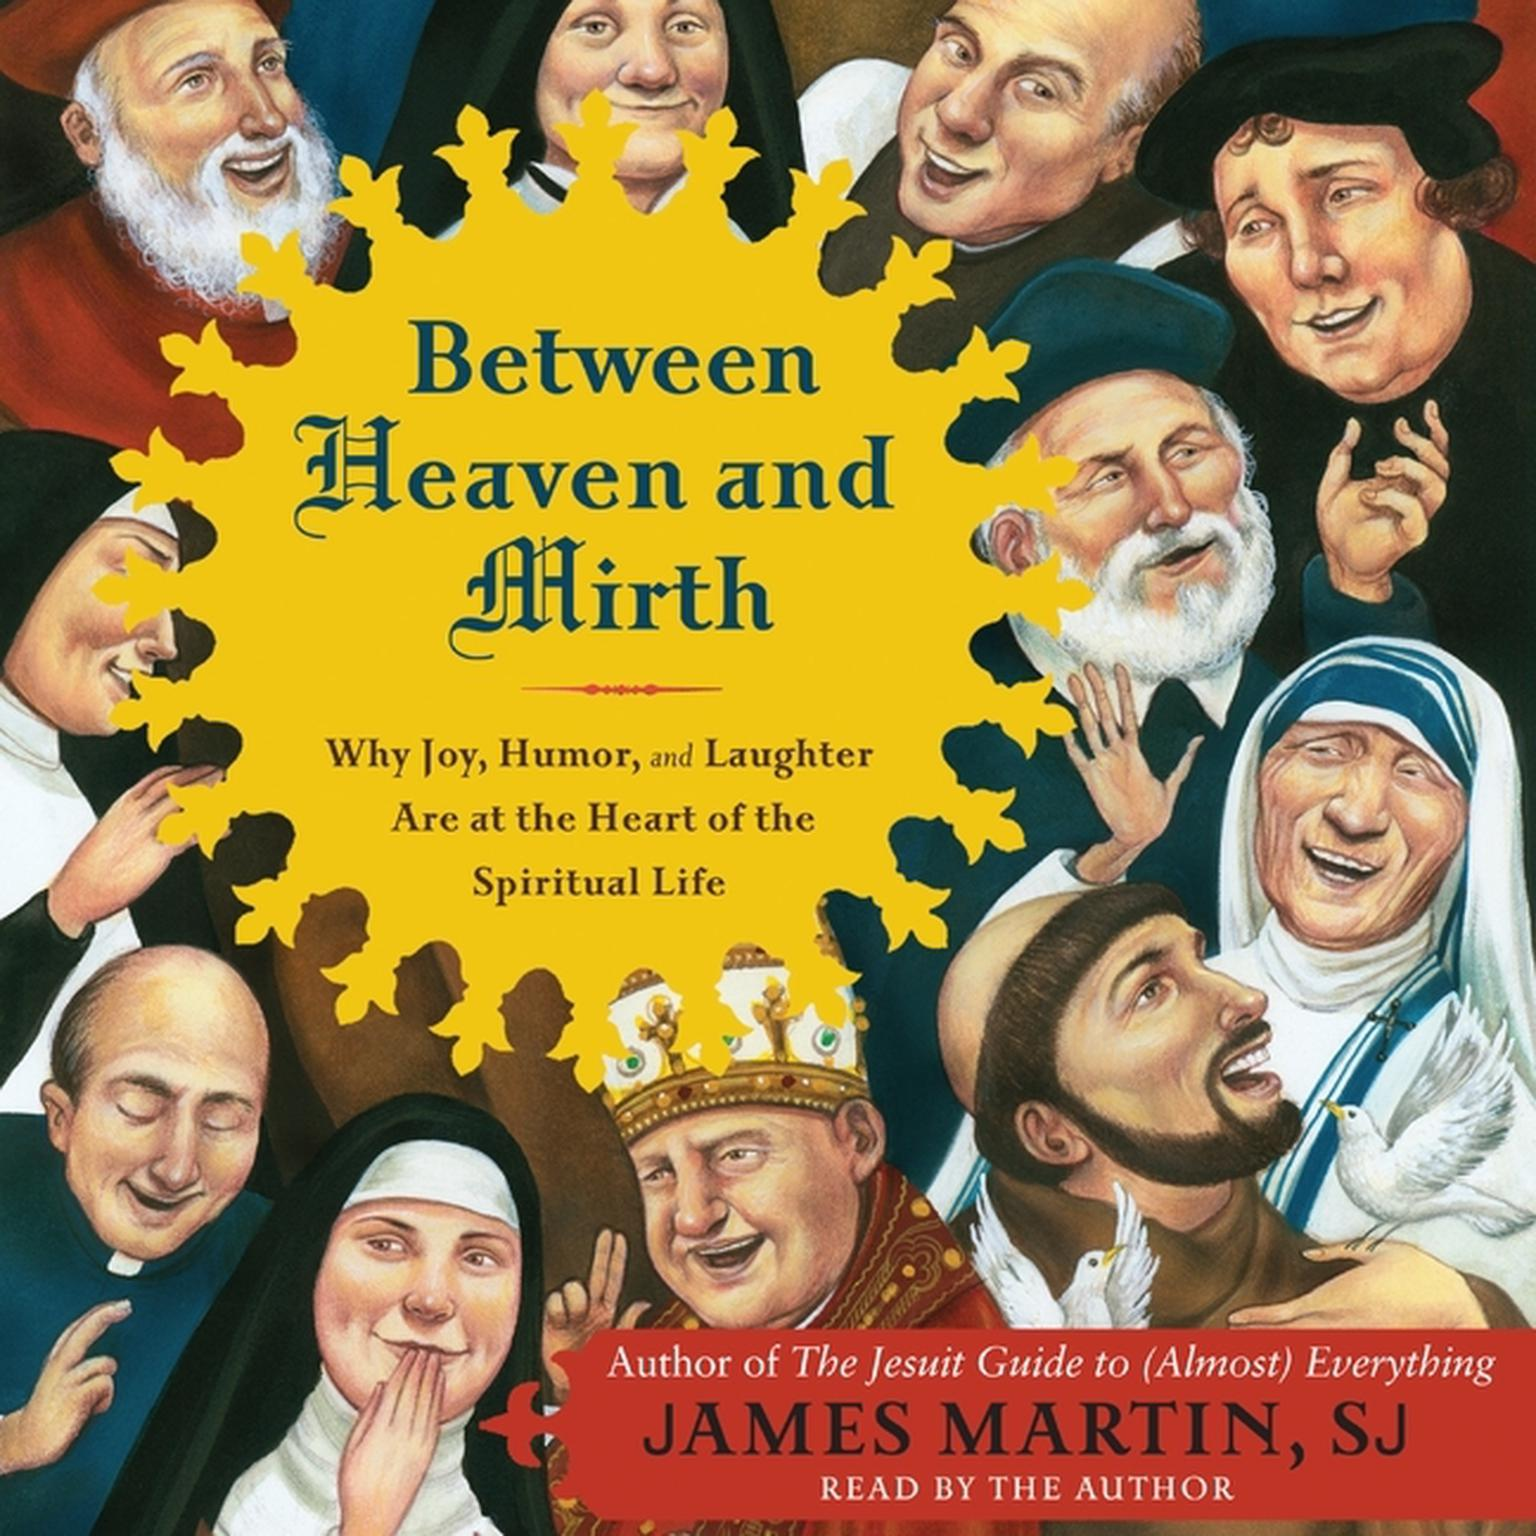 Printable Between Heaven and Mirth: Why Joy, Humor, and Laughter Are at the Heart of the Spiritual Life Audiobook Cover Art